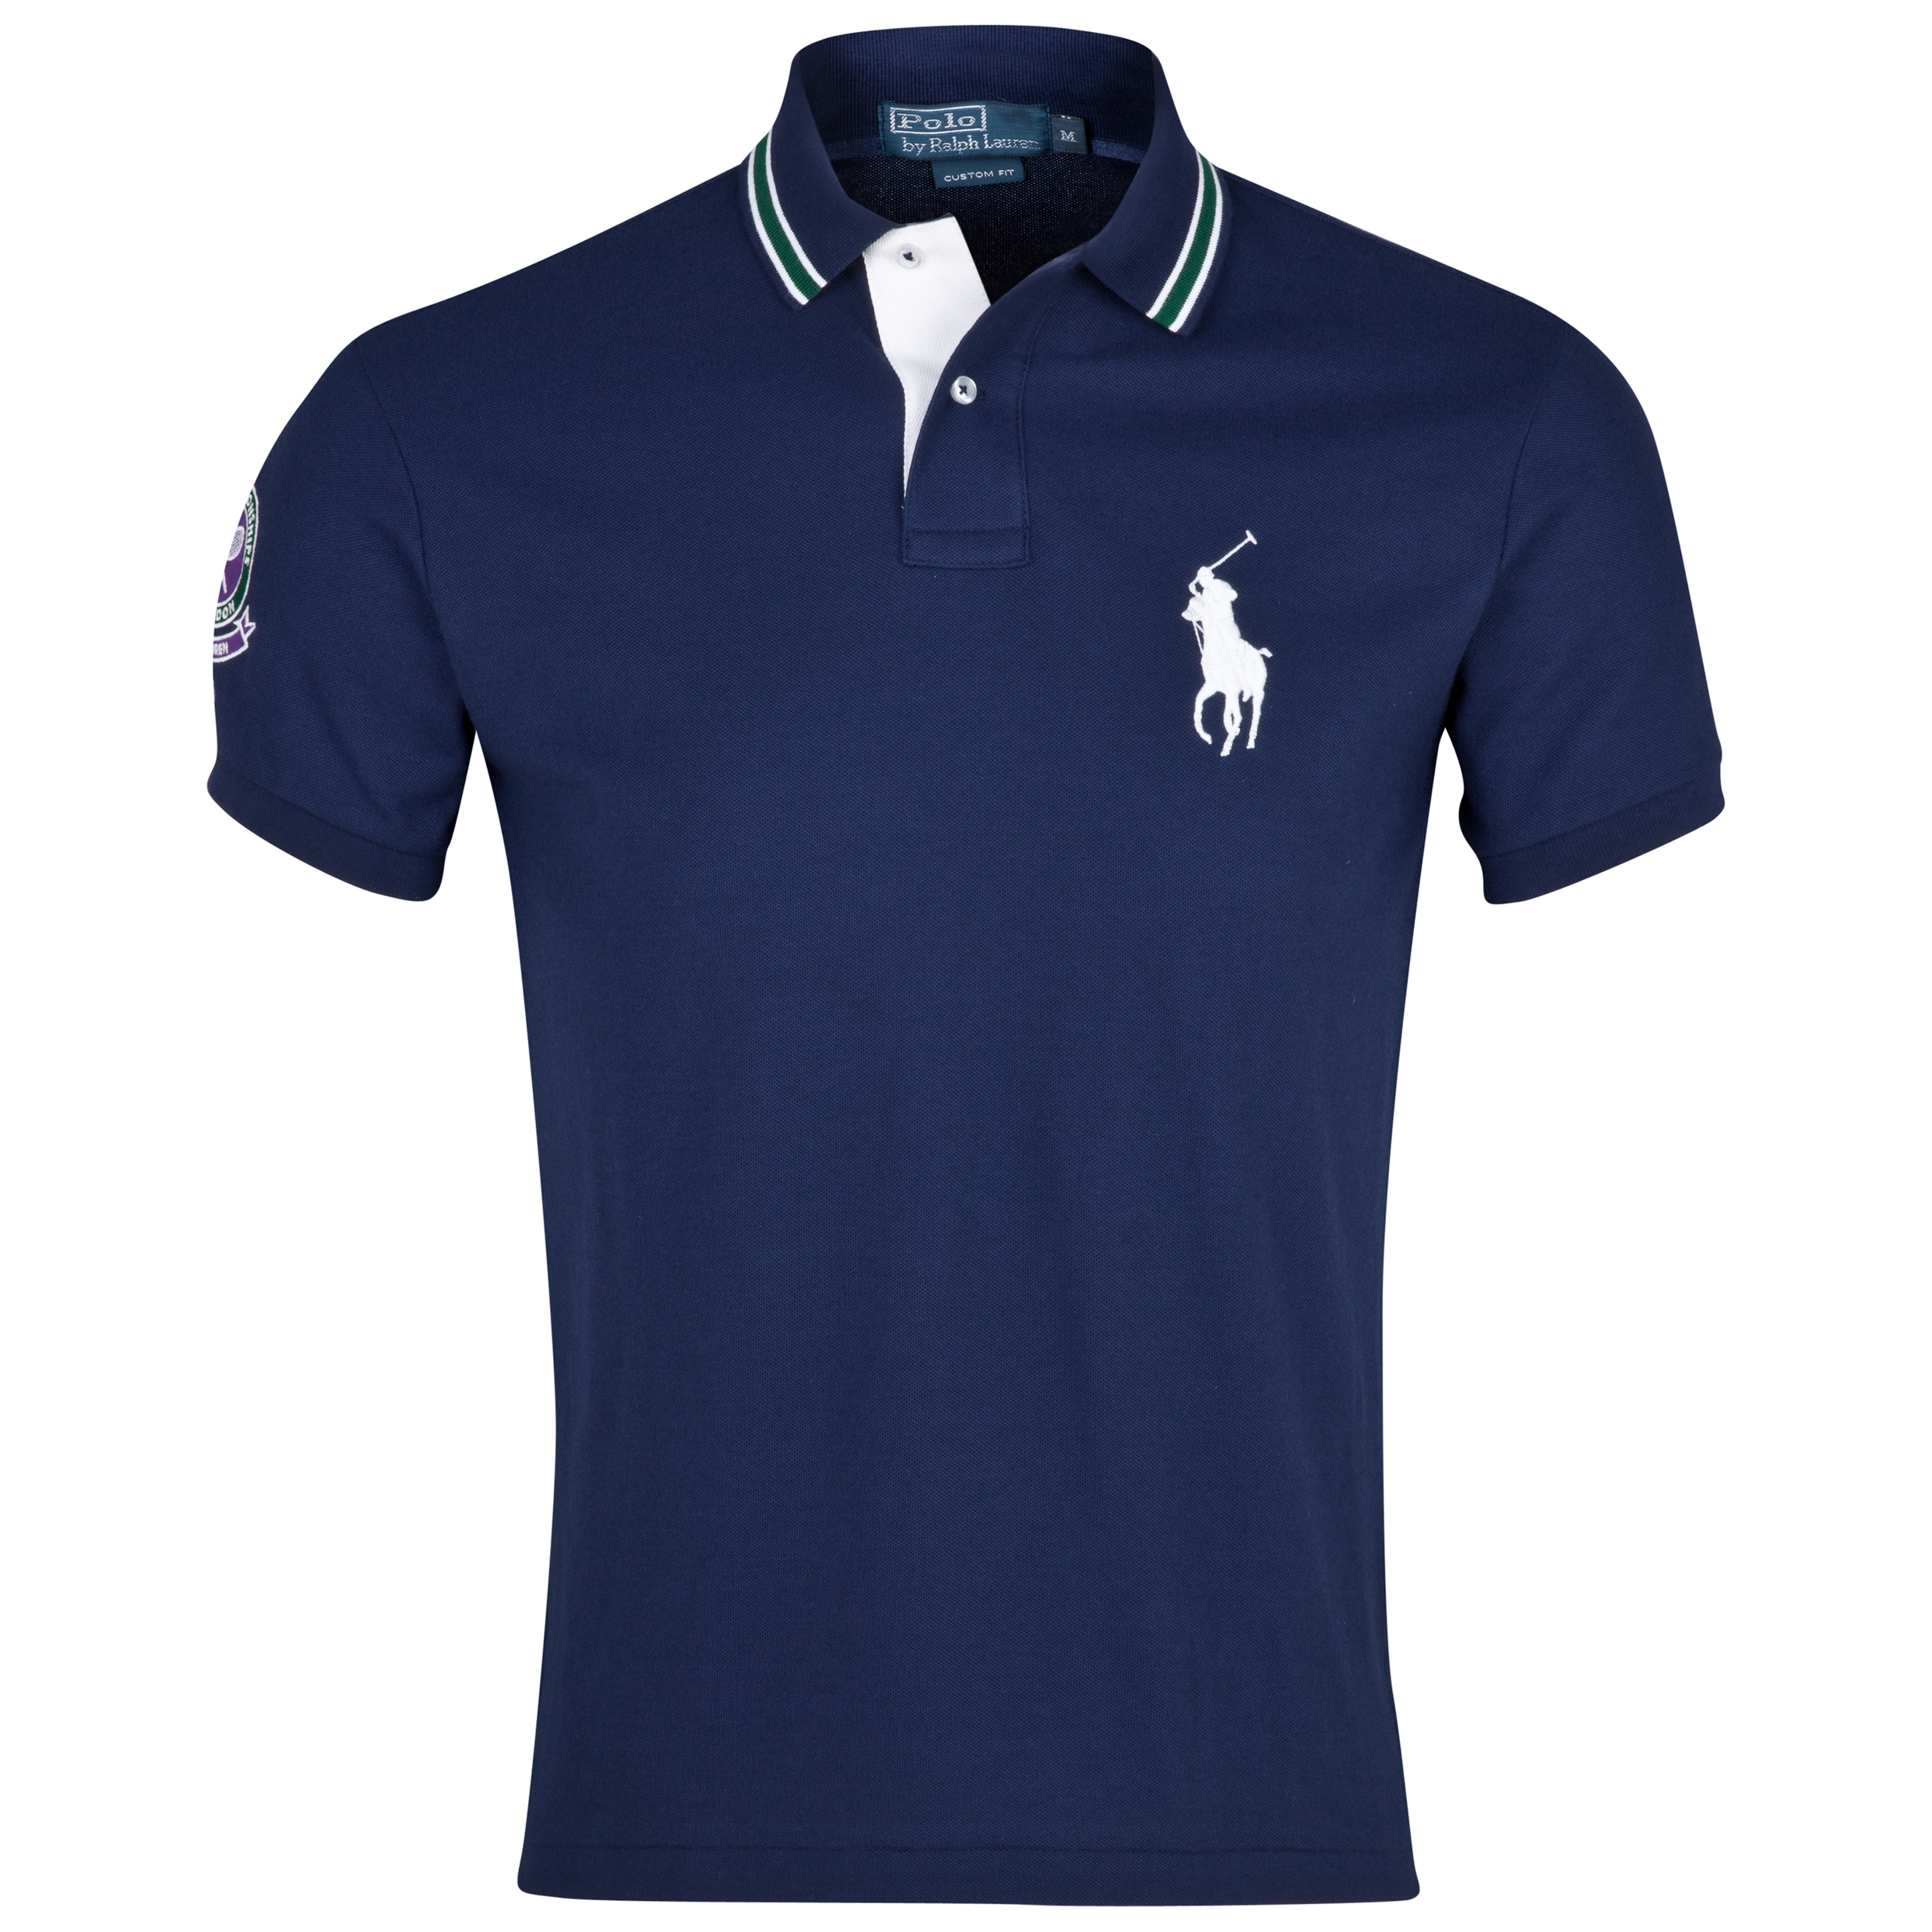 Wimbledon Polo Ralph Lauren Wimbledon Ball Boy Polo Navy